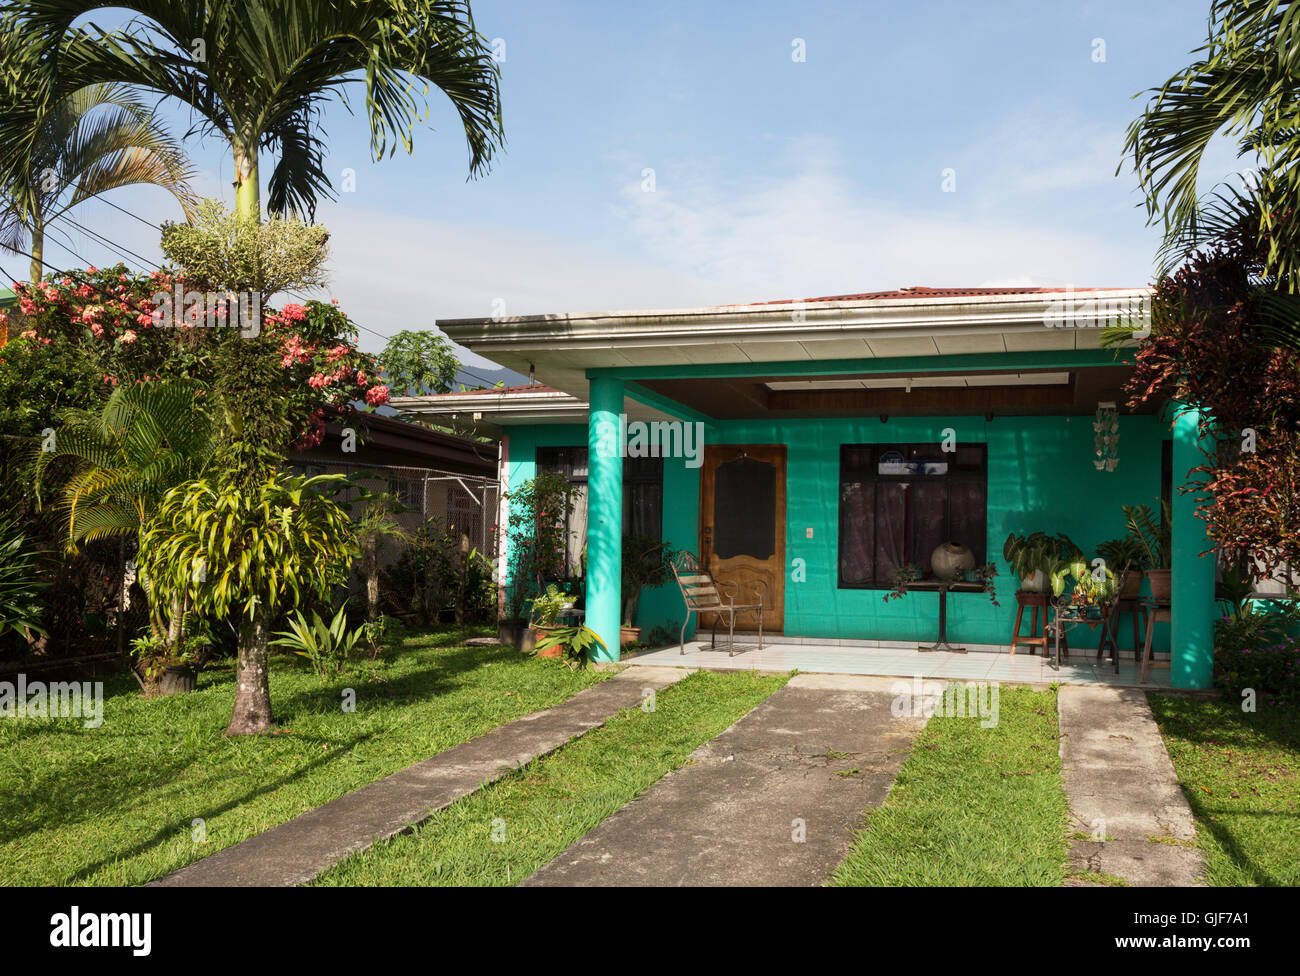 Typical costa rican house, La Fortuna, Costa Rica, Central America - Stock Image